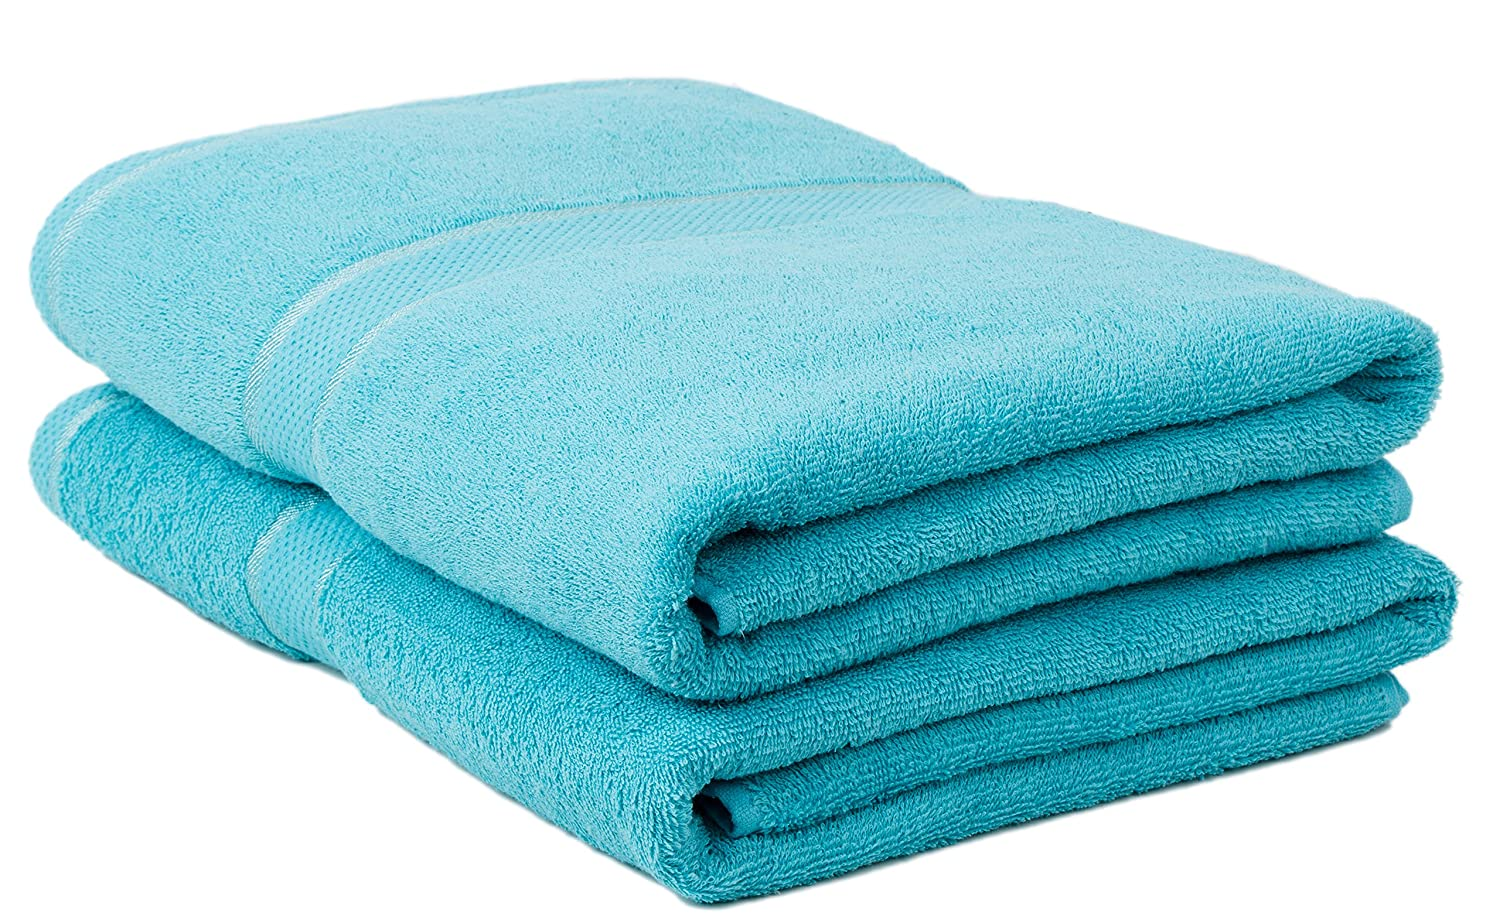 Durable Ultra-Absorbent,Luxurious Rayon Trim,Embroidery Decorative Set Classic Collection Premium 100/% Organic Cotton Oversized Extra Large Bath Towels 34 X 60 Natural 2 Pack,Blue